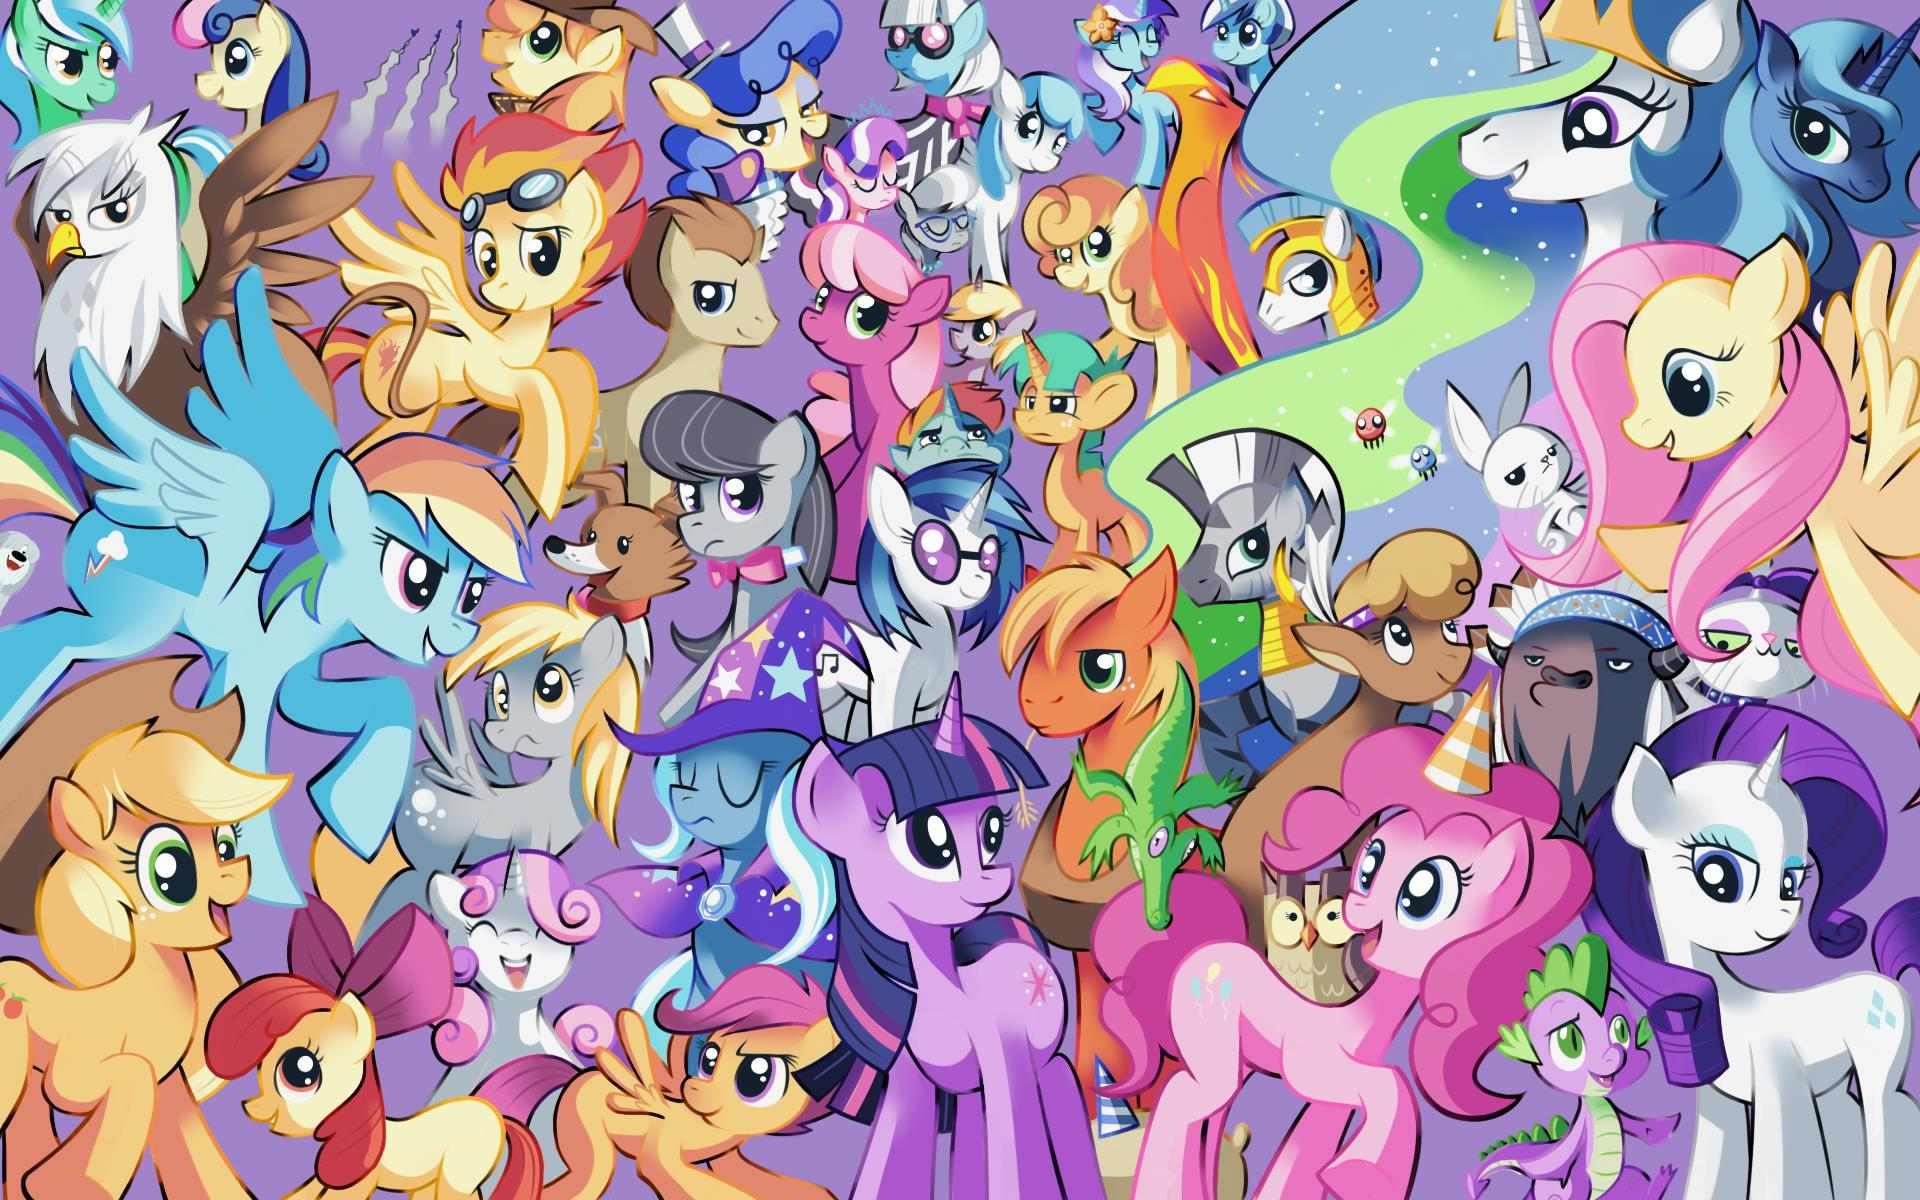 cartoons-my-little-pony-wallpaper-HD